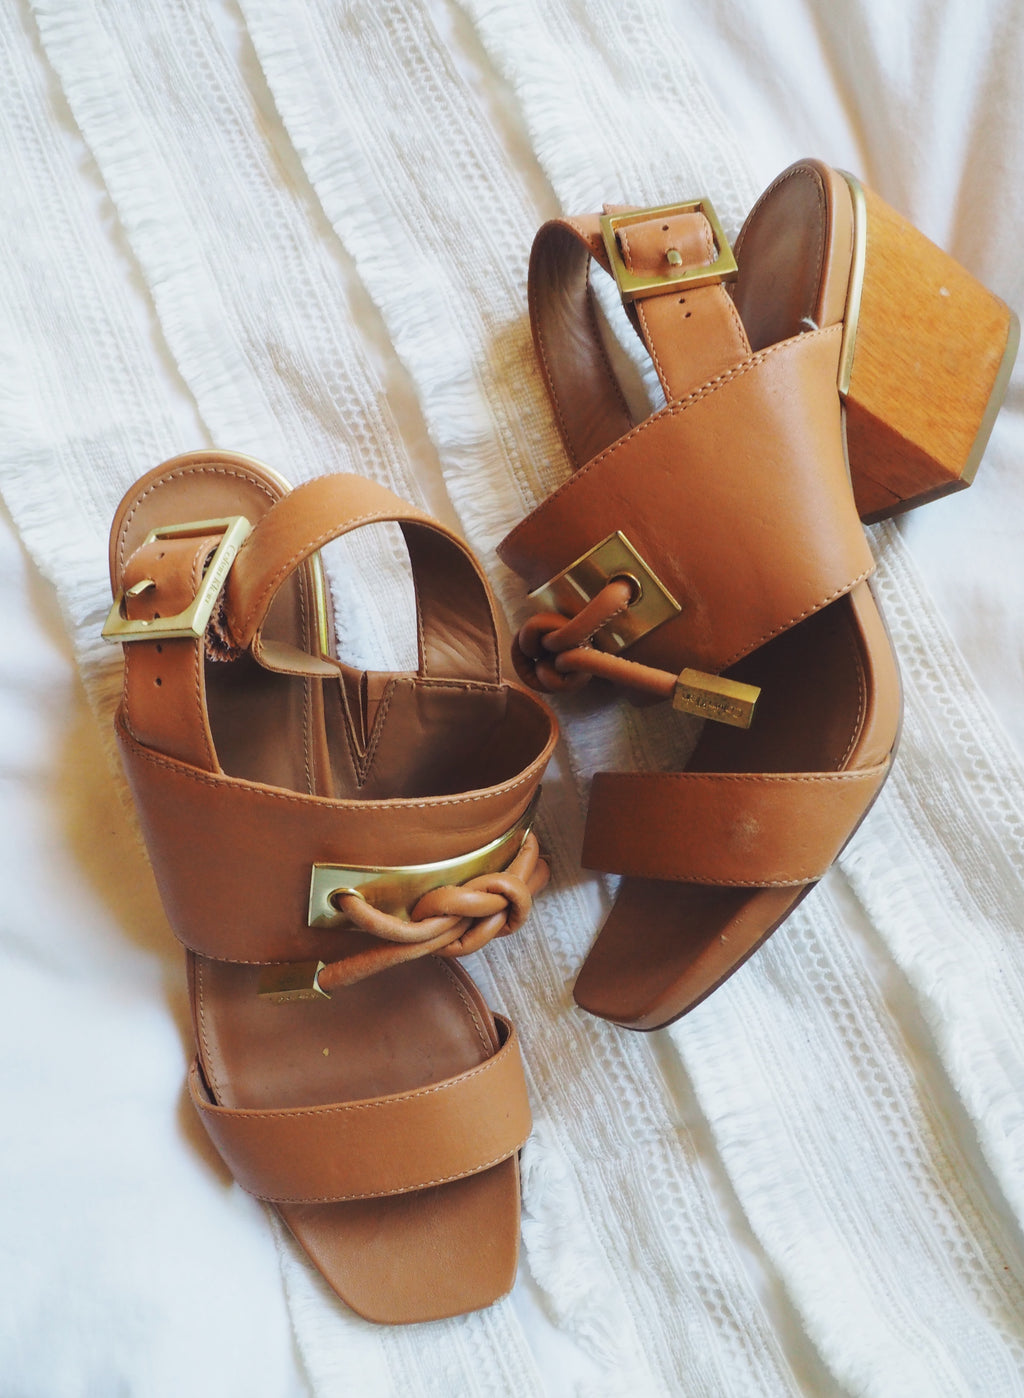 Calvin Klein Caramel Leather Block Heel Sandals